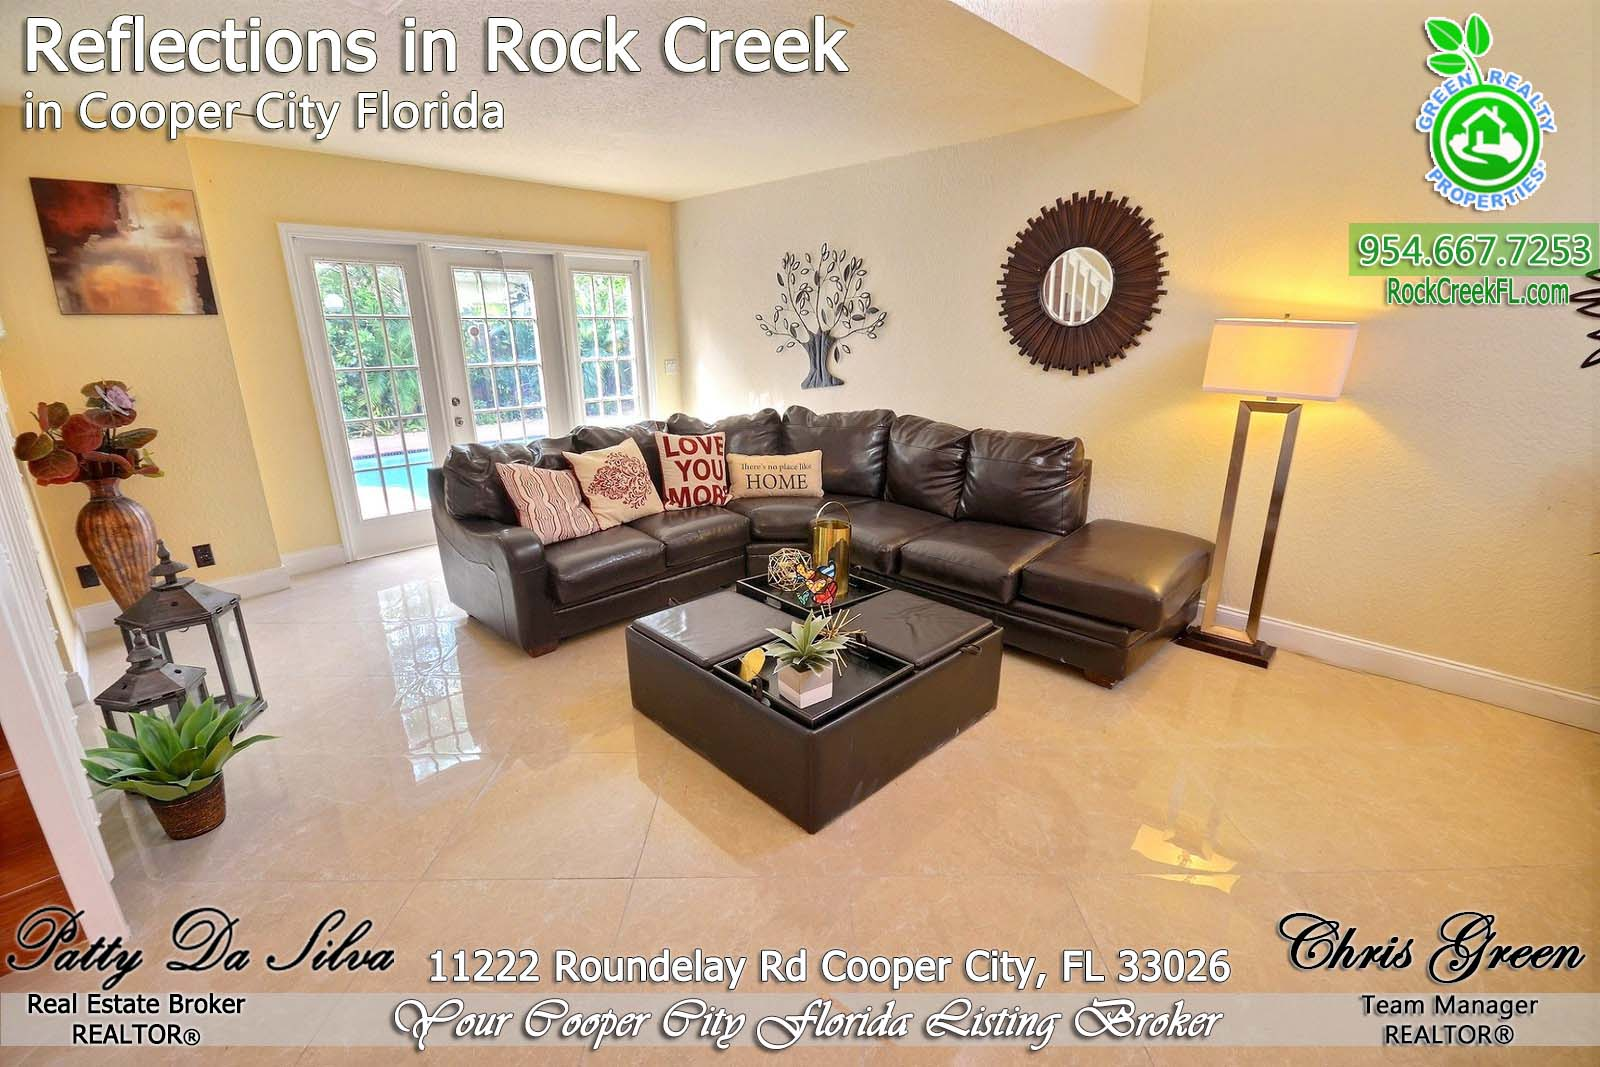 Patty Da Silva SELLS Reflections Homes in Cooper City